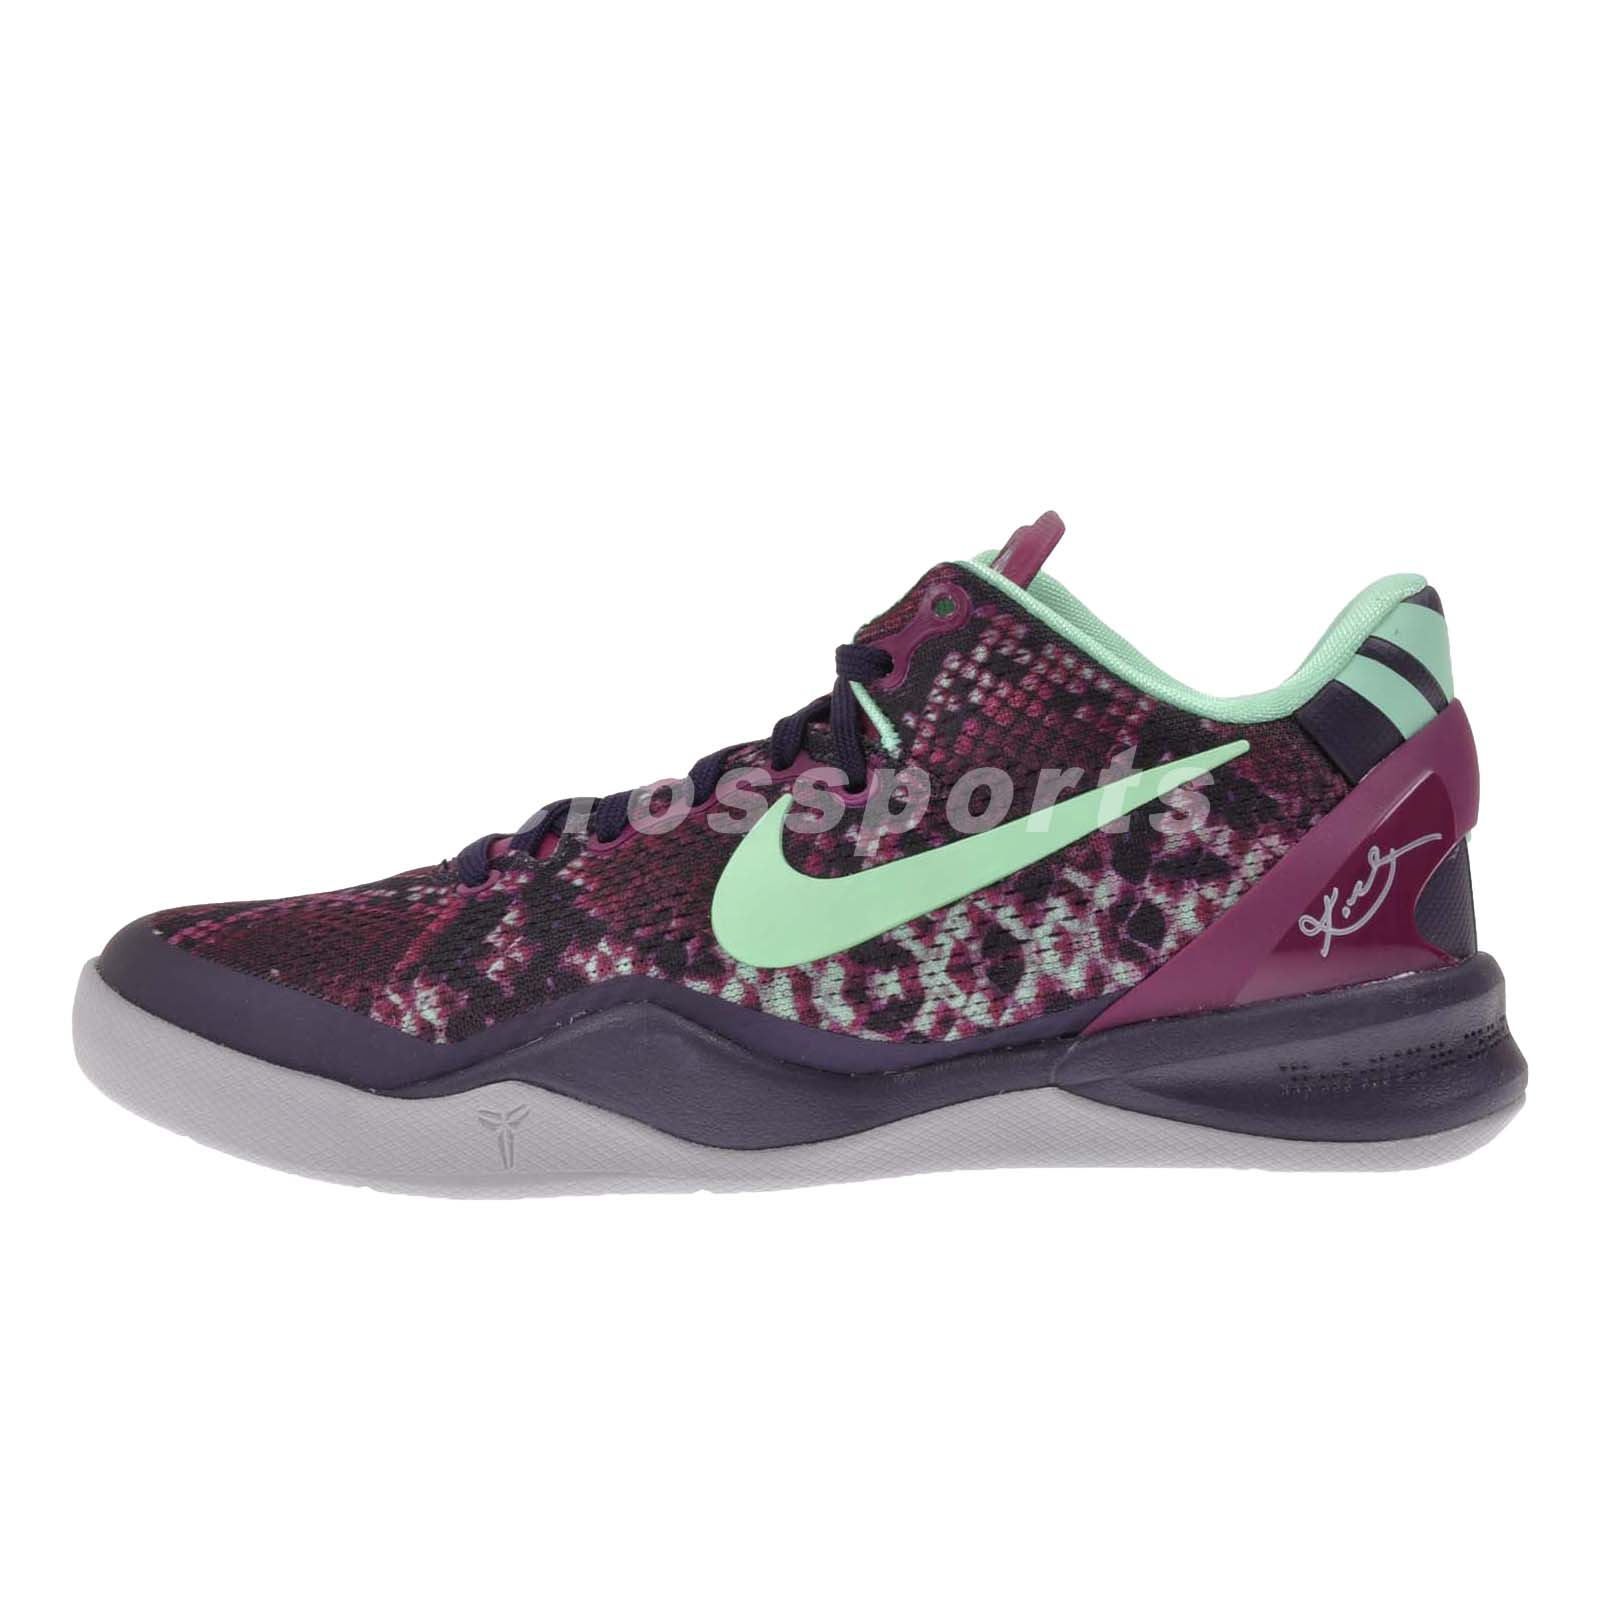 Kobe Bryant Youth Basketball Athletic Shoes Green Black